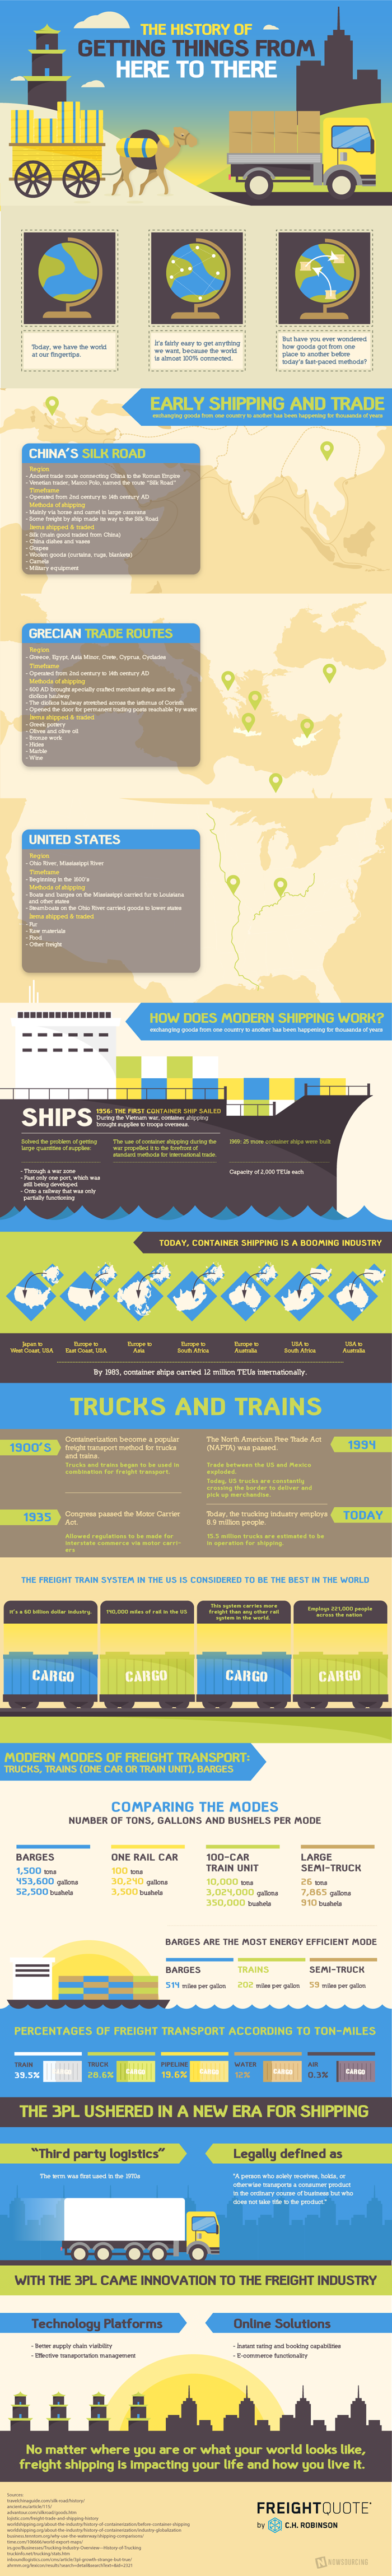 history of freight infographic